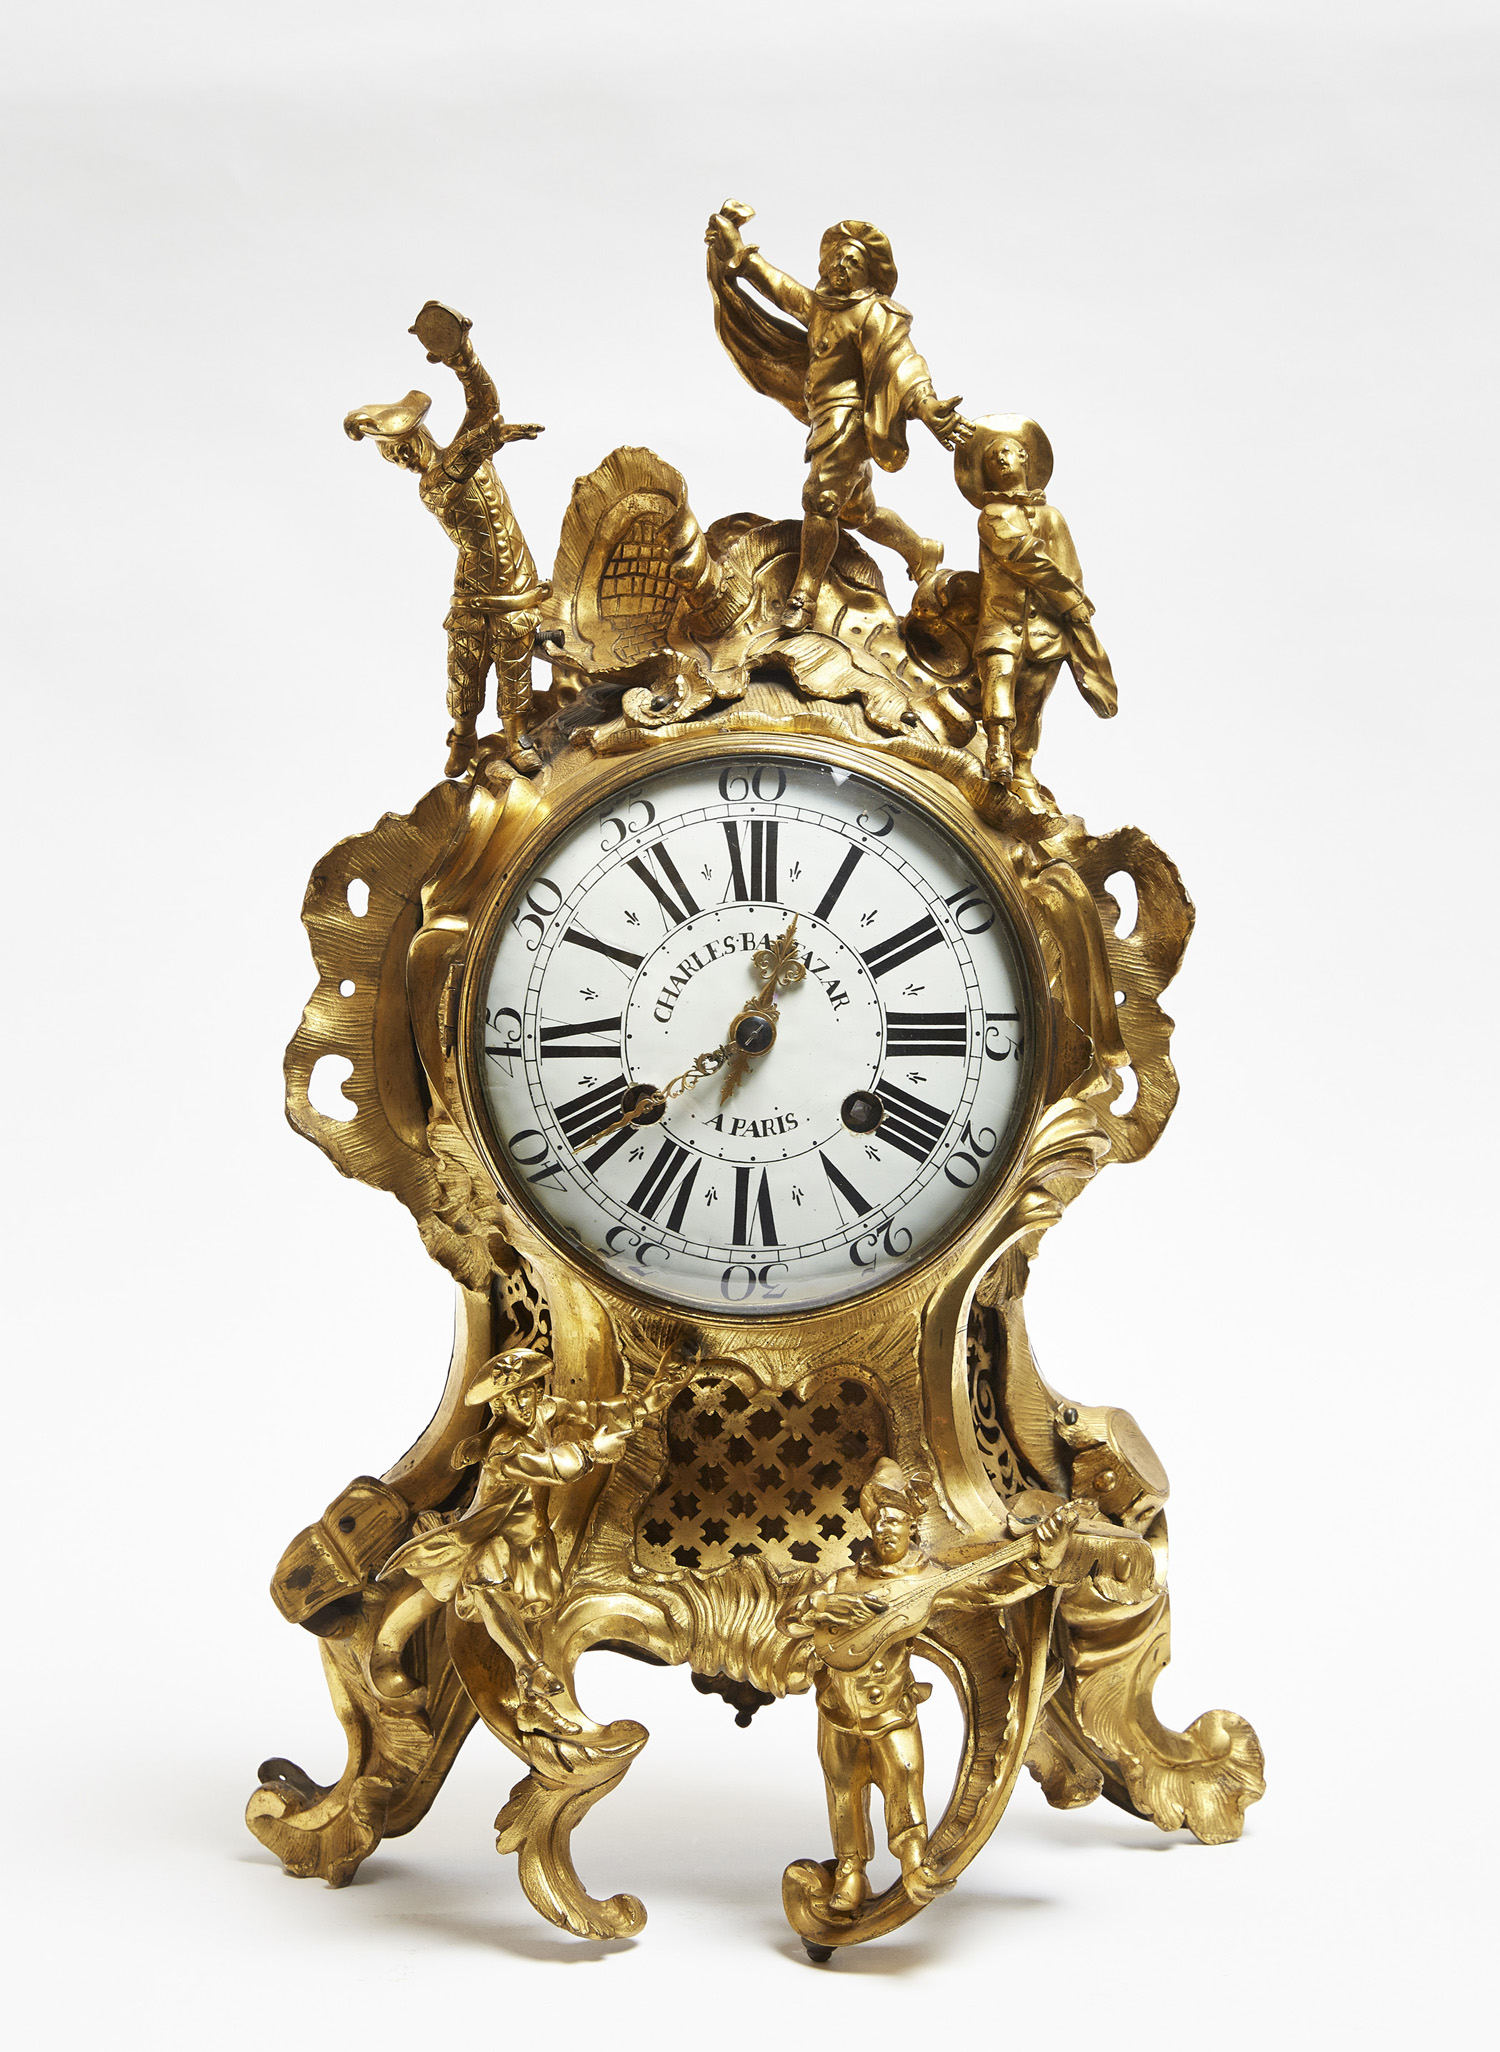 houghton-hall_baltazar_clock_ex-2013-hh_